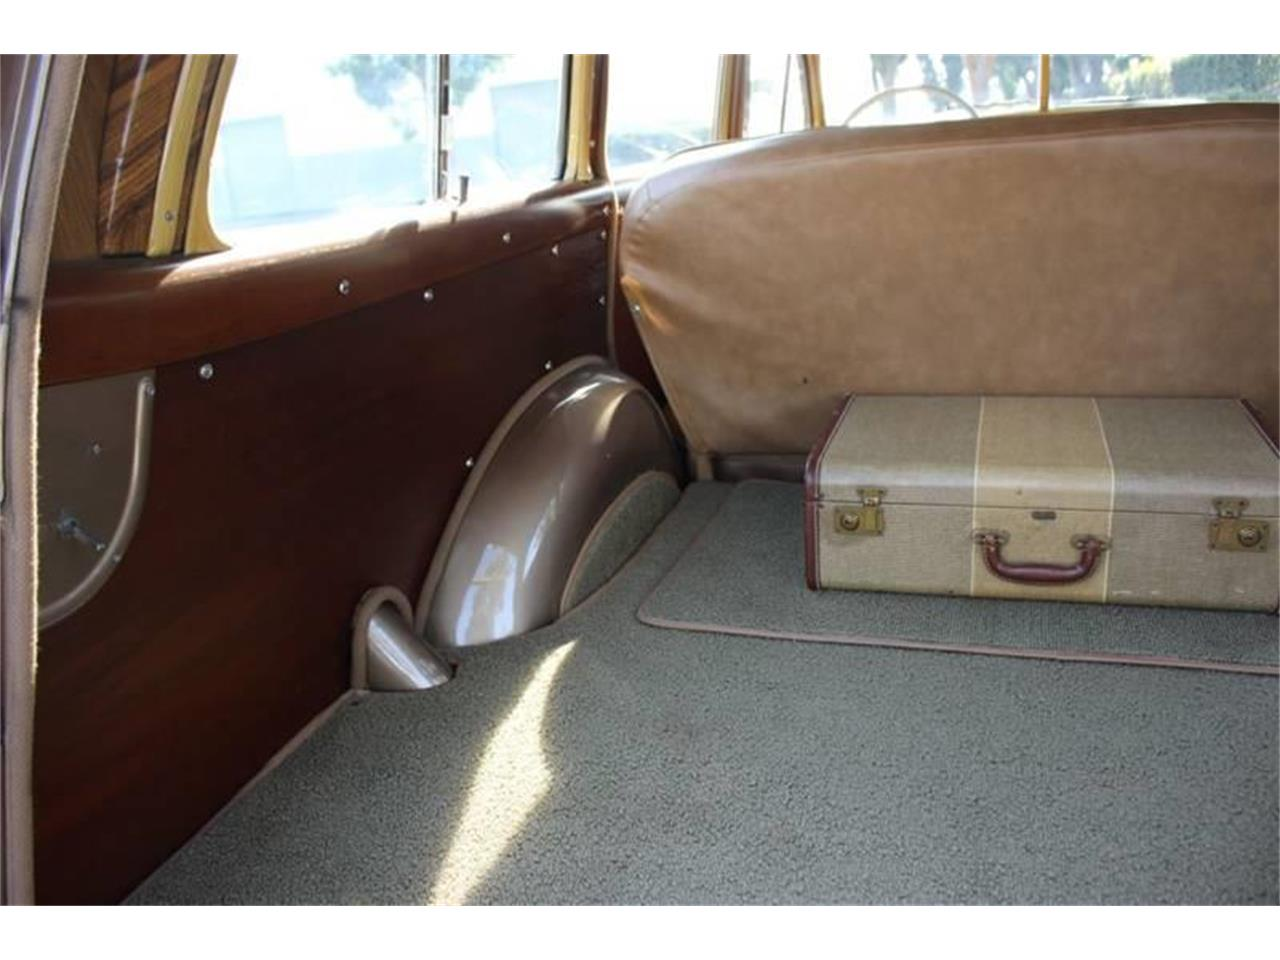 1950 Chevrolet Styleline Deluxe for sale in La Verne, CA – photo 32